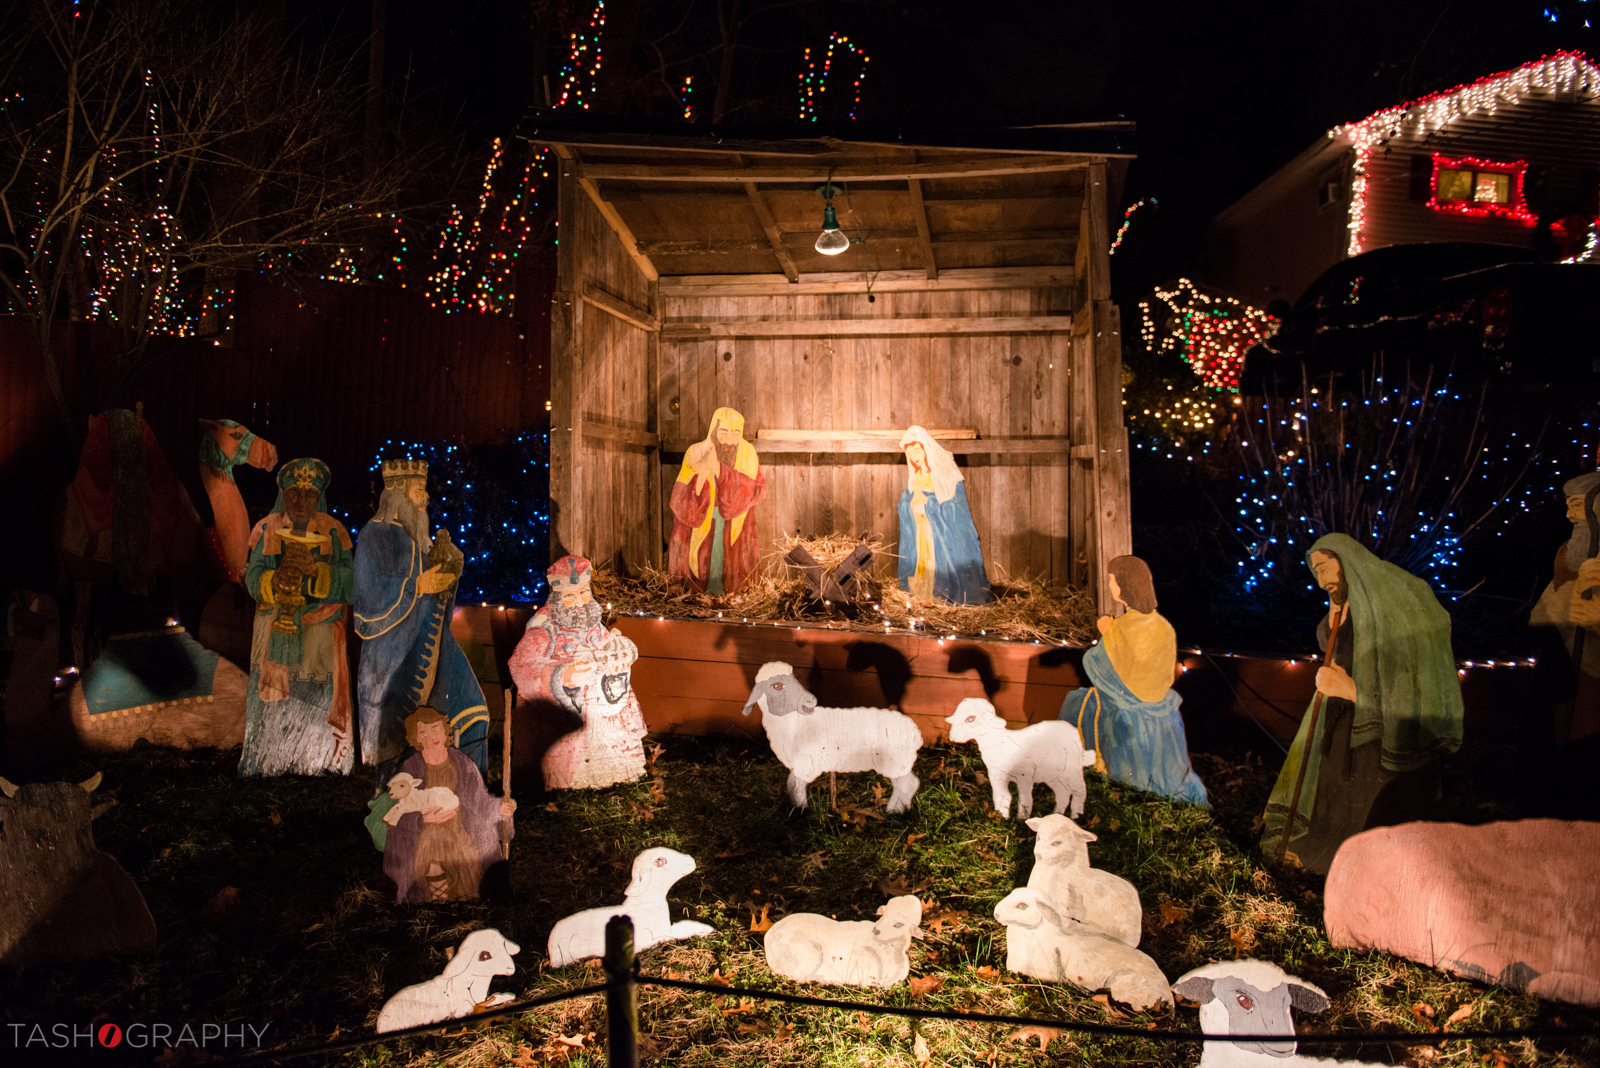 The Nativity scenefeaturing a handmade creche and figures.